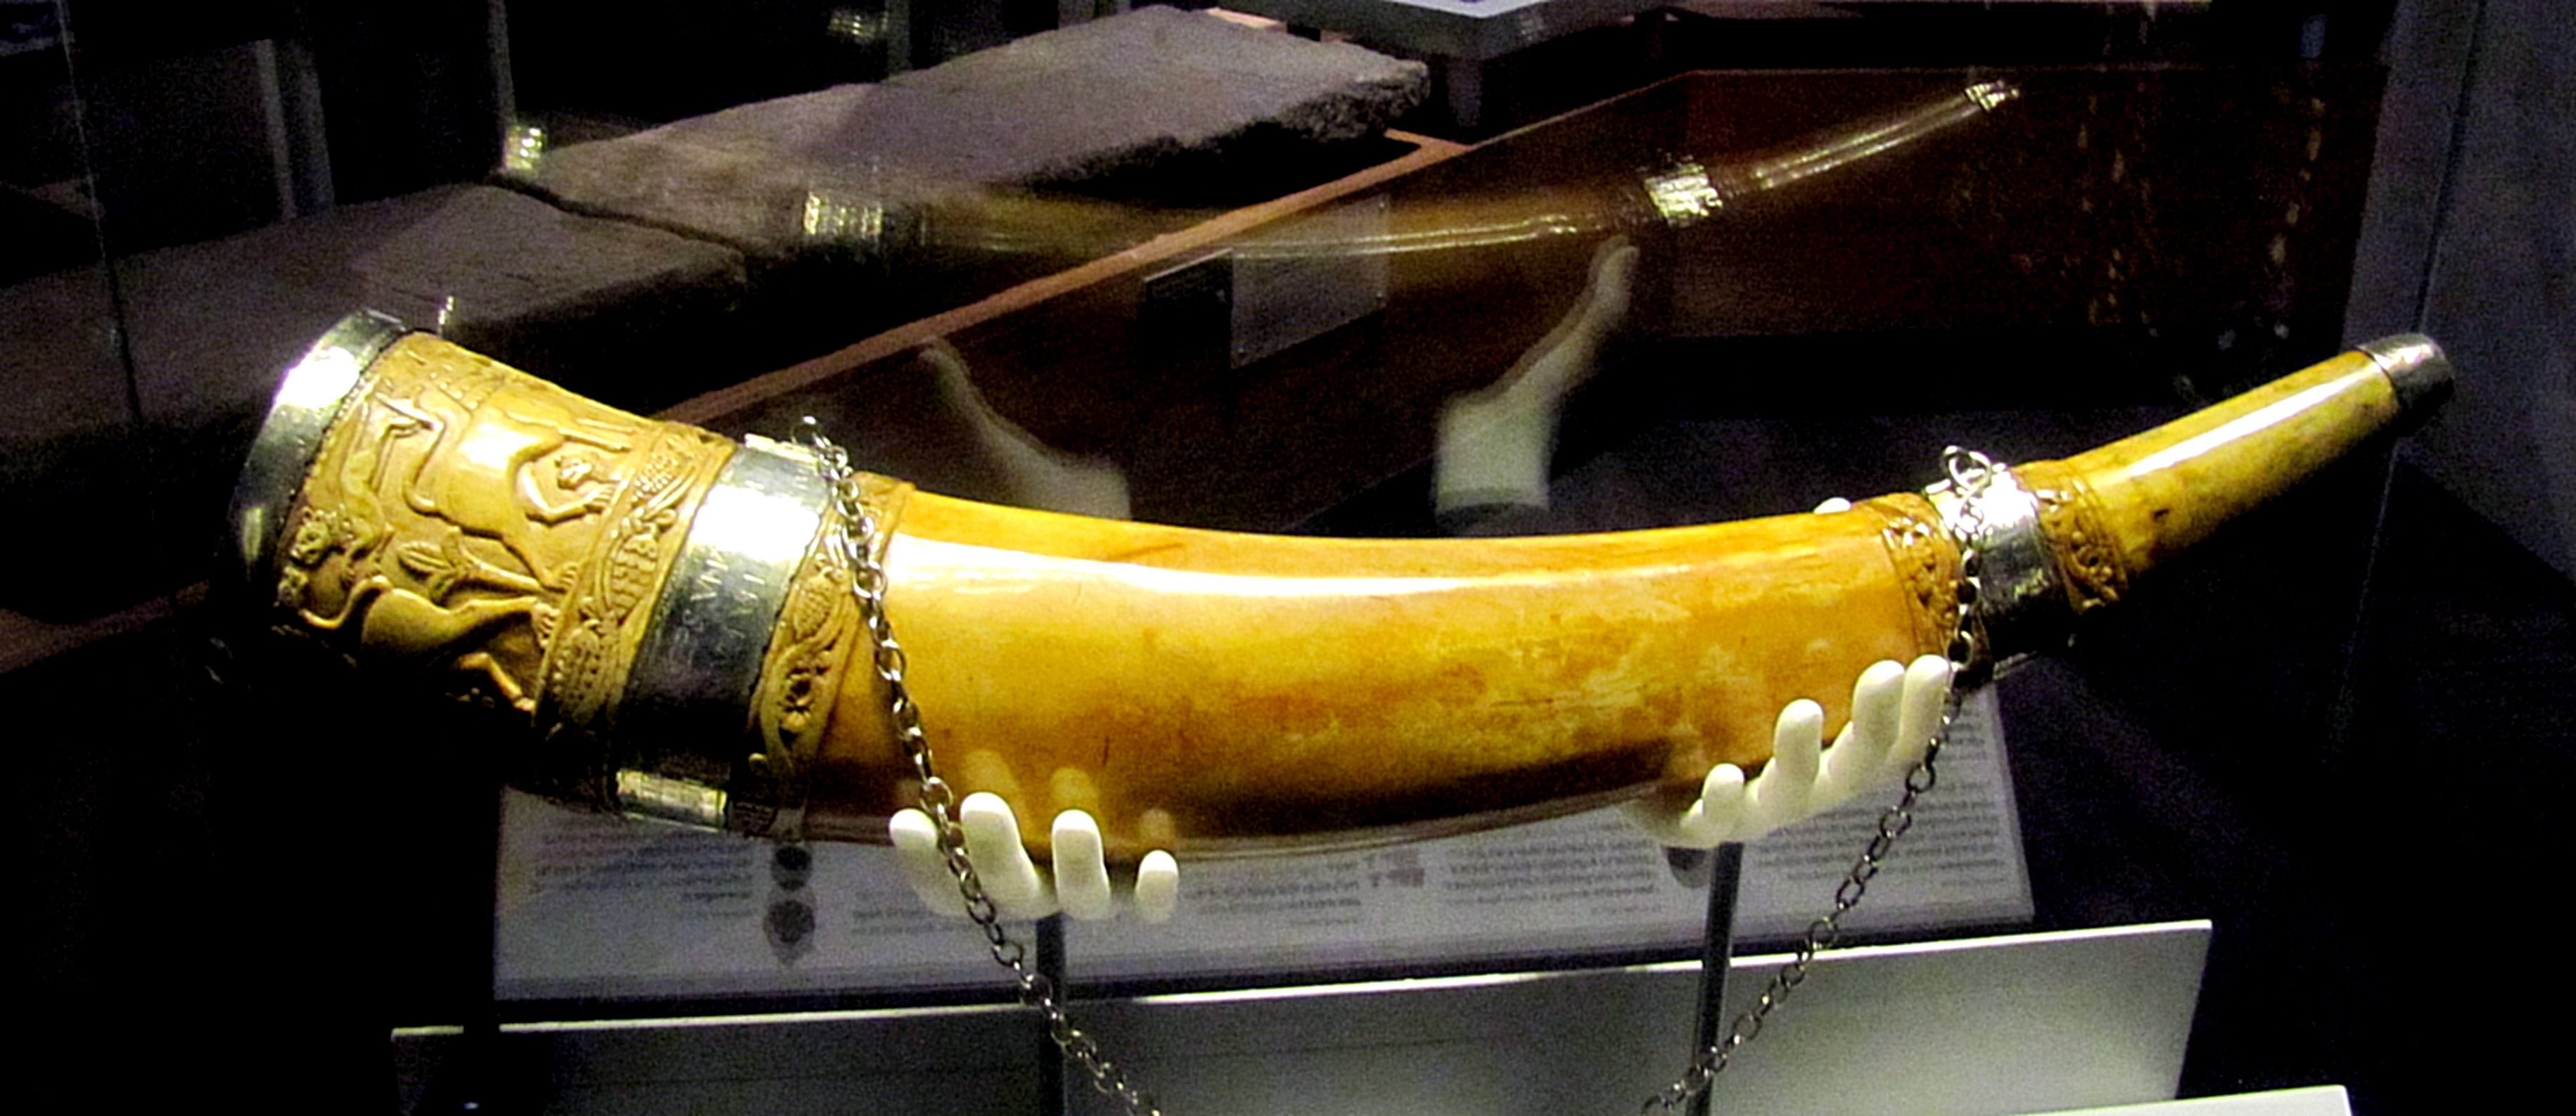 Down in the undercroft, they also have a number of treasures of the cathedral. This is a carved elephant tusk horn that dates from the Saxon period.